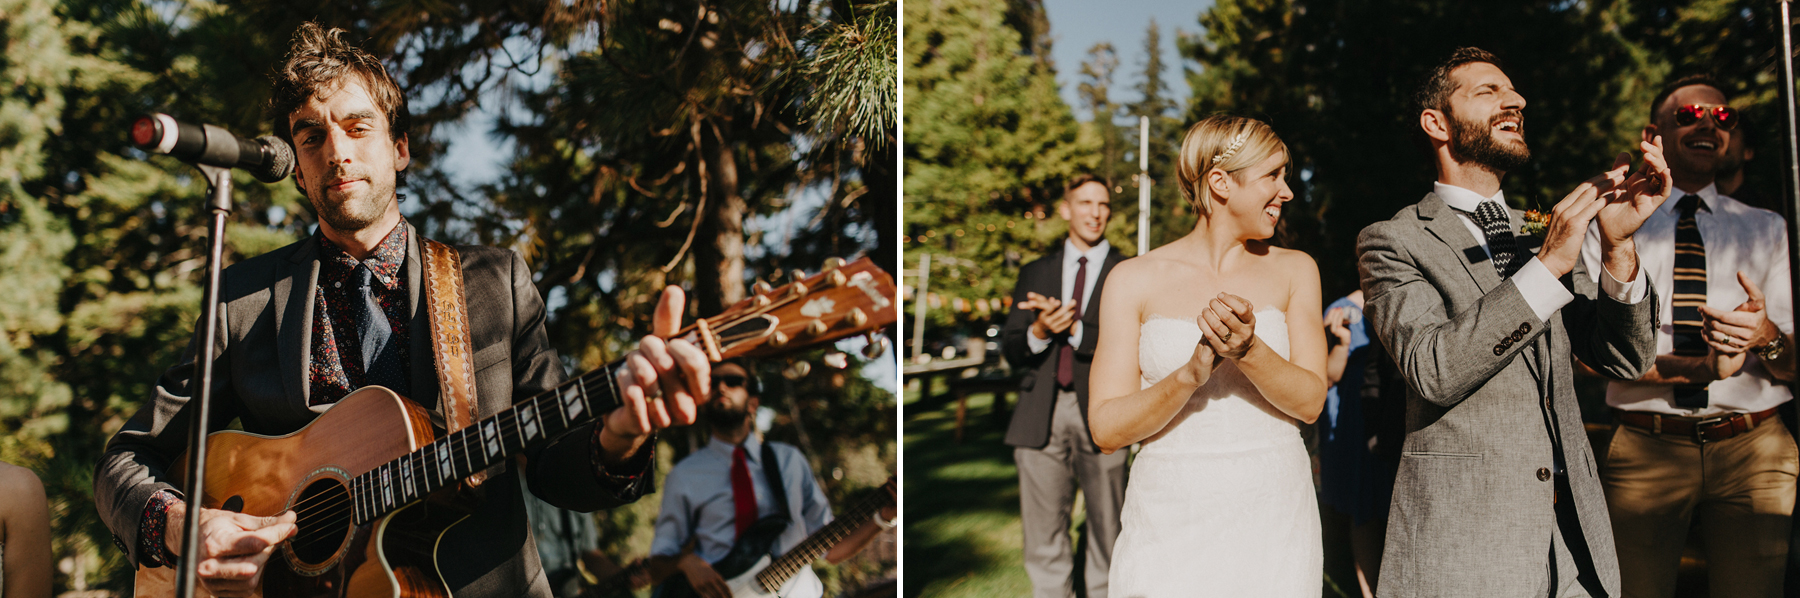 wedding party performs a song during their ceremony in the woods